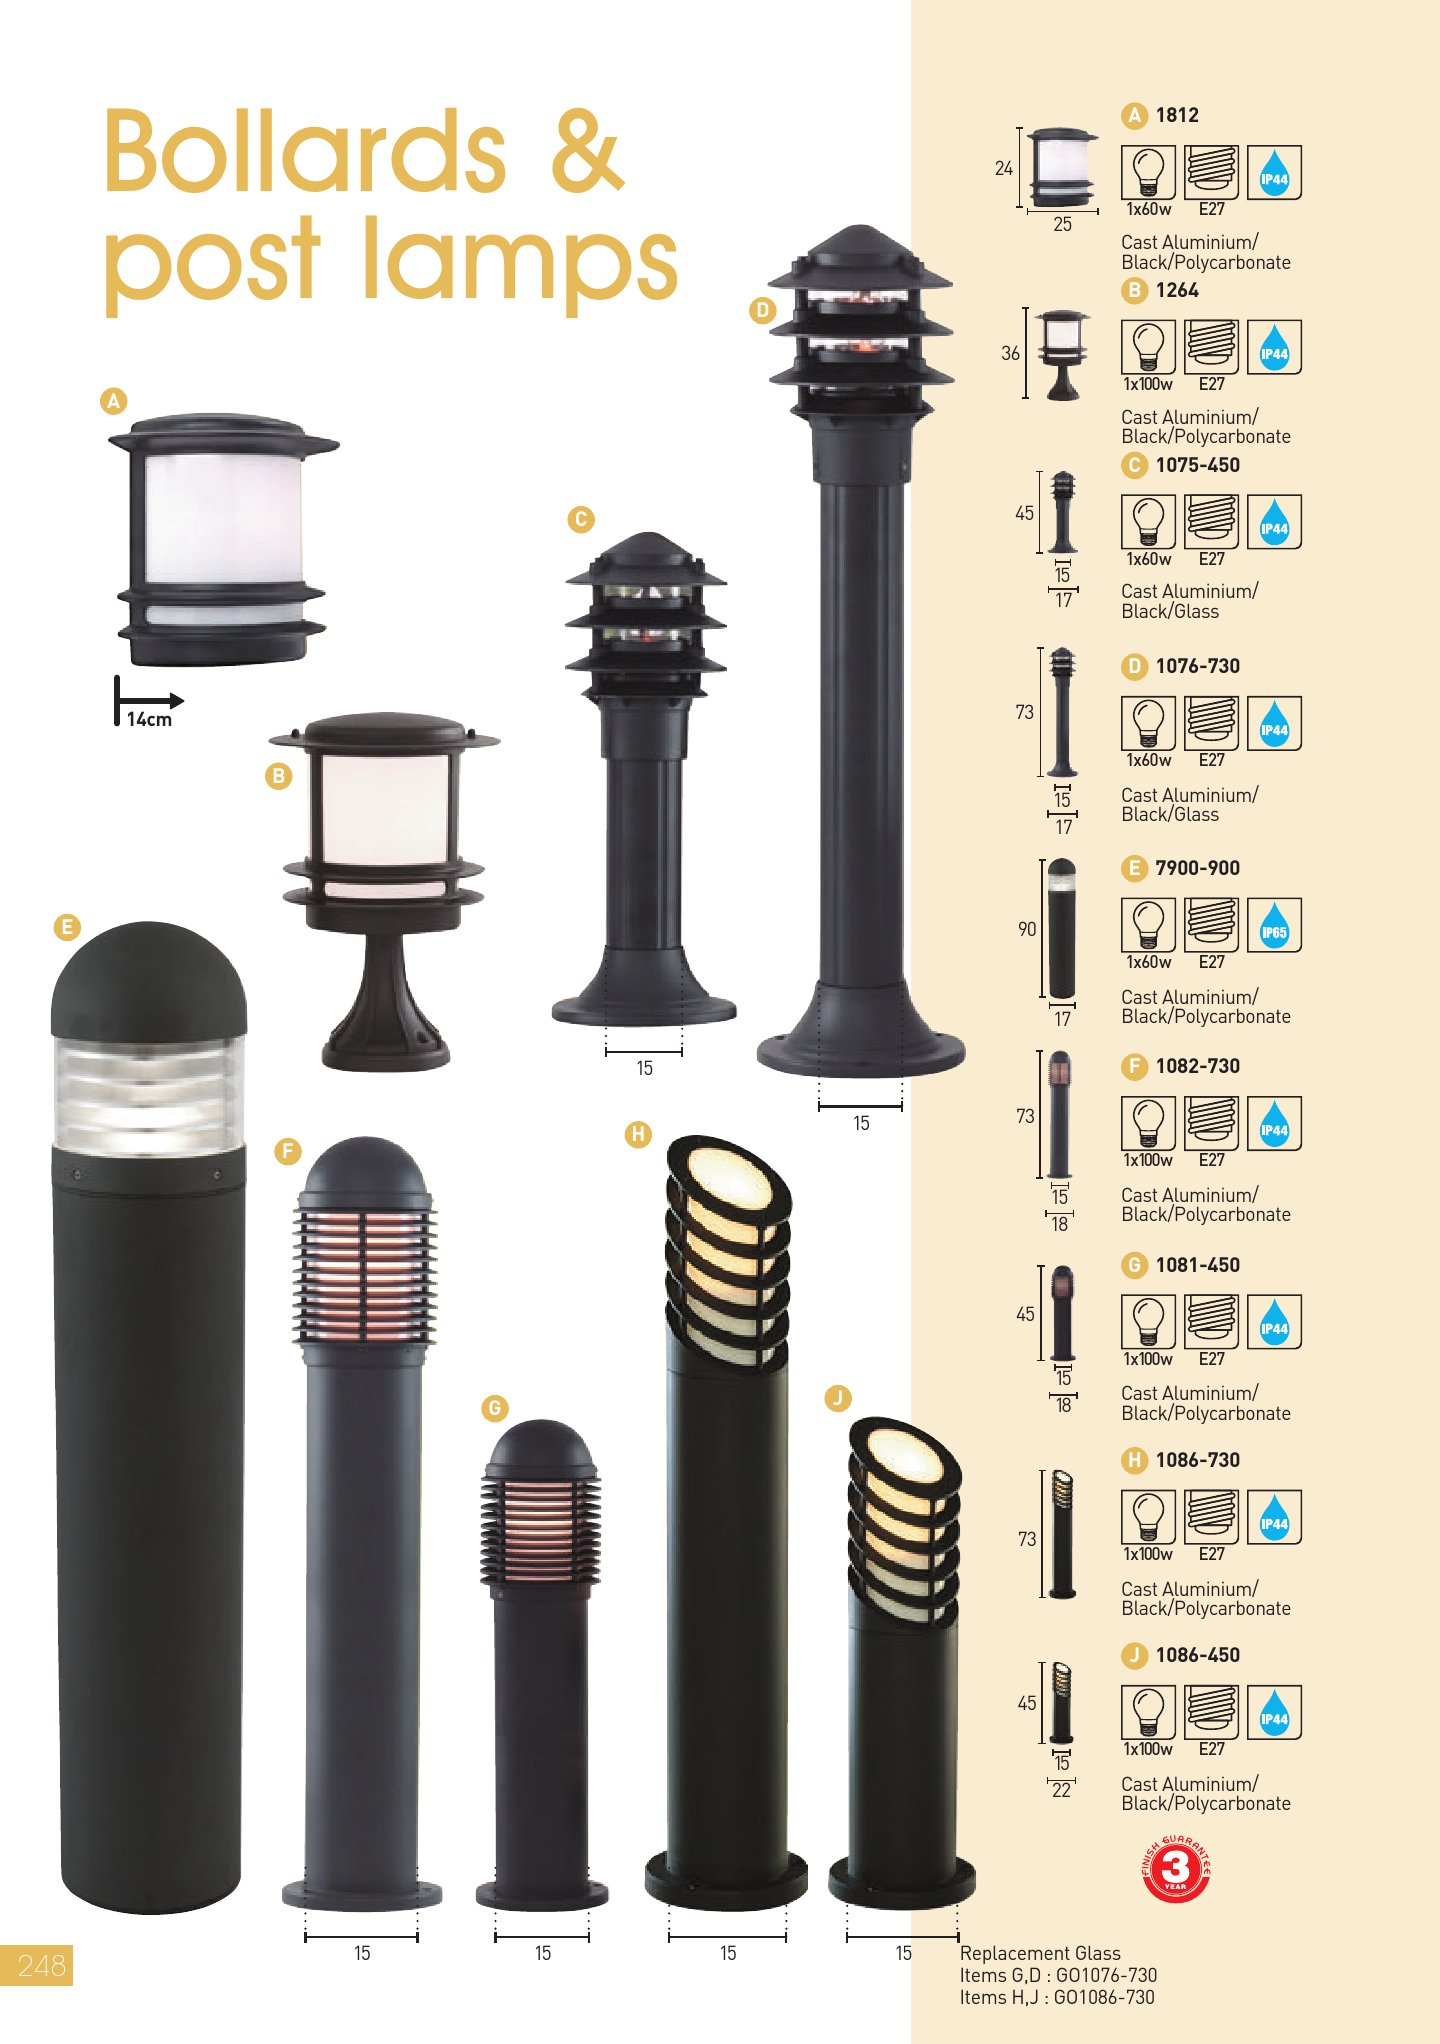 Bollards & Post Lamps 1081 450